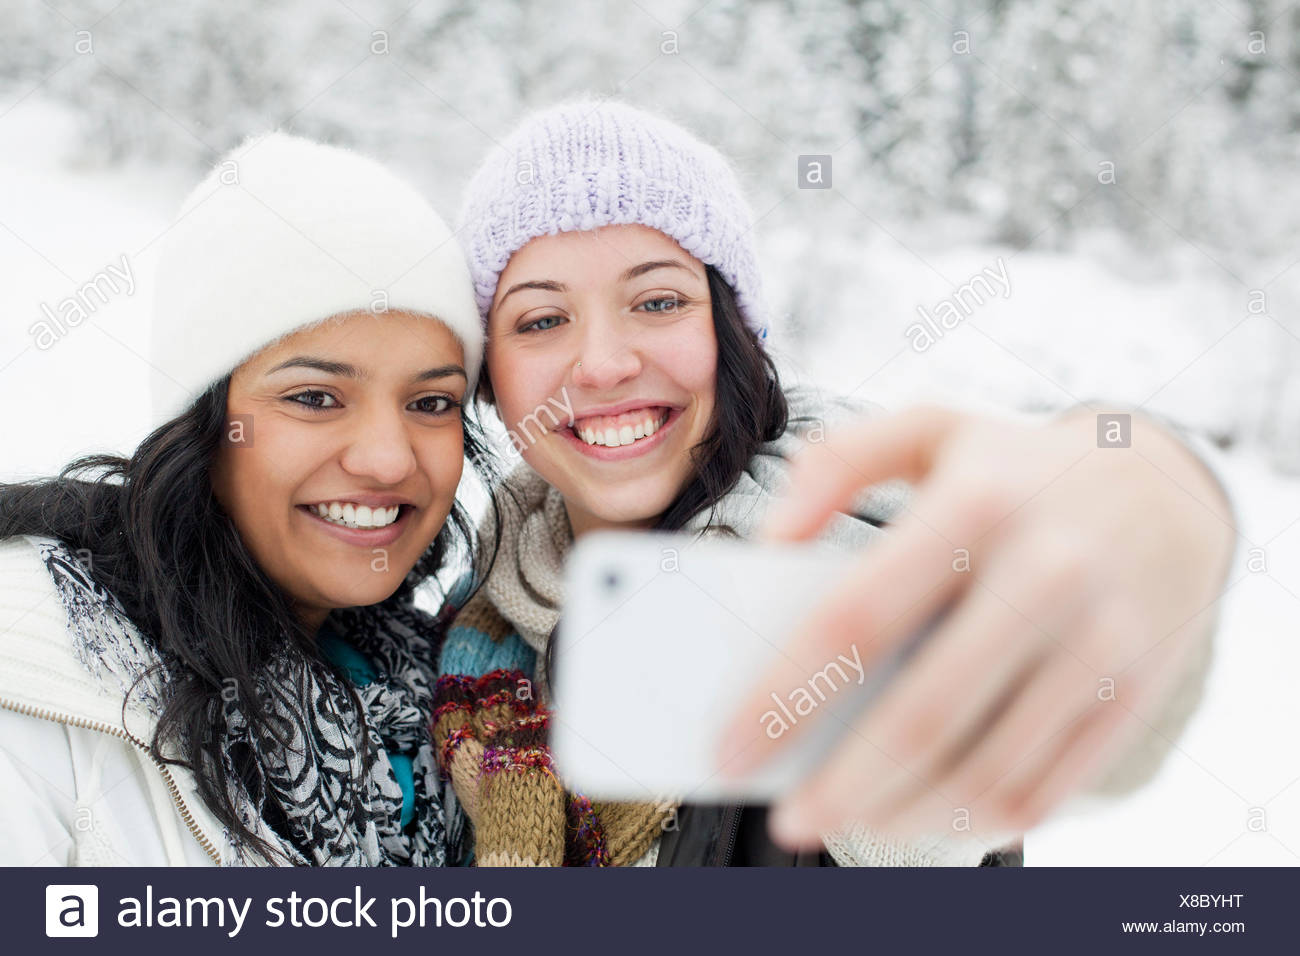 self-portraits in the snowy countryside - Stock Image